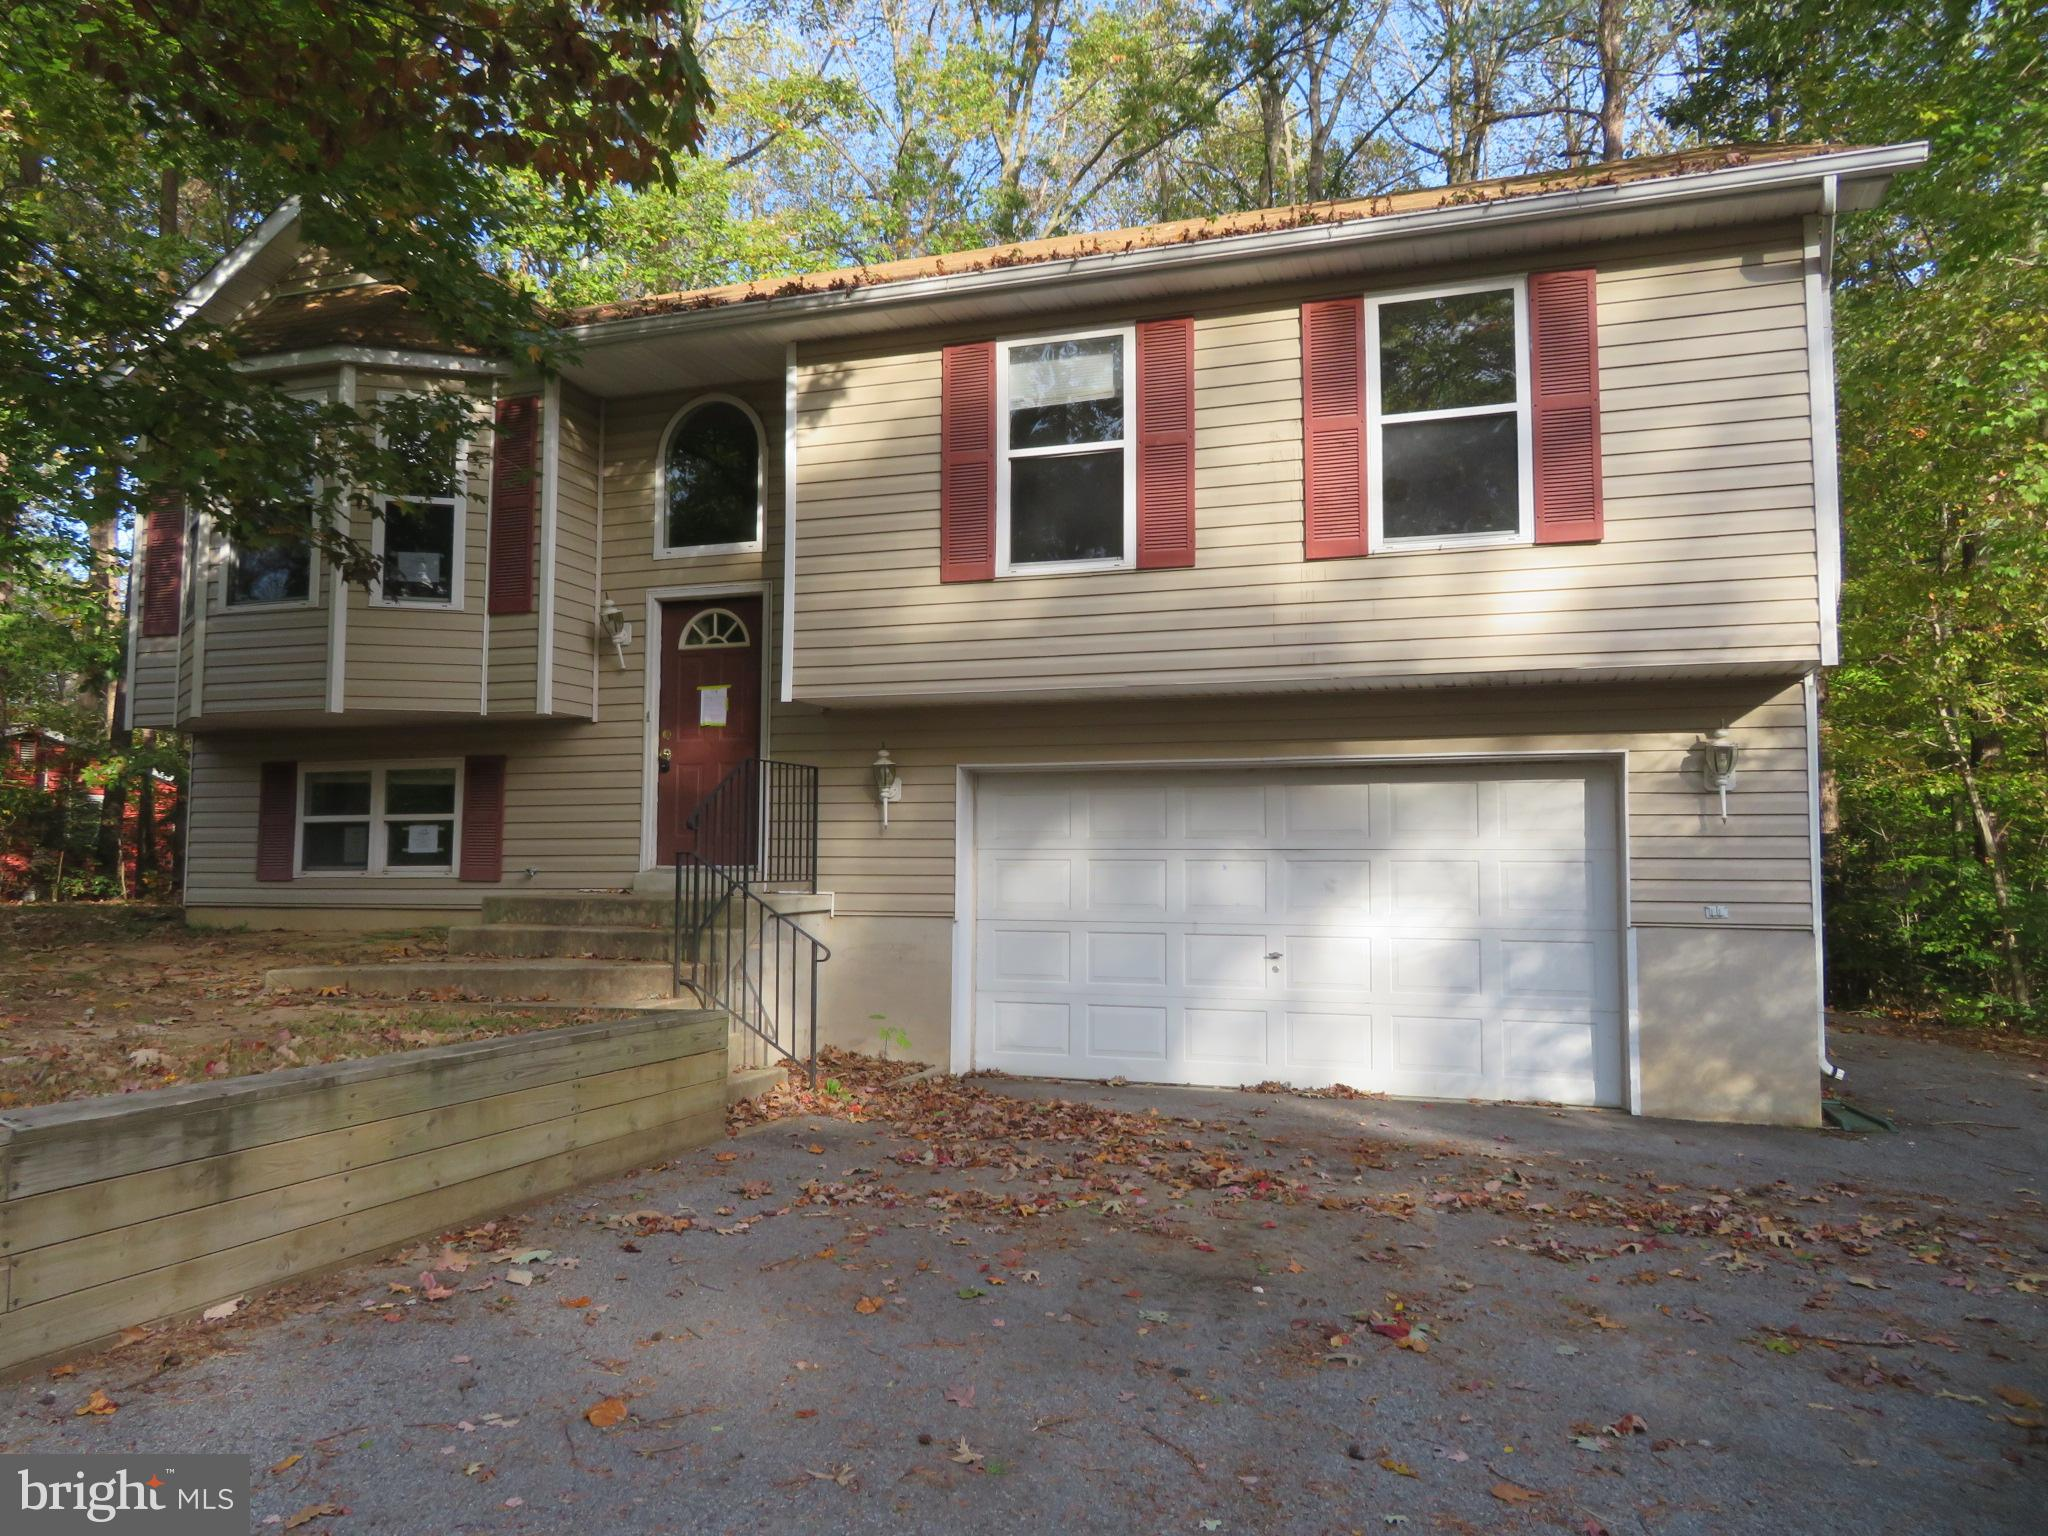 Great value, Split Foyer home, 3 bedrooms, 2.5 baths, attached 2 car garage, rear deck. House locate